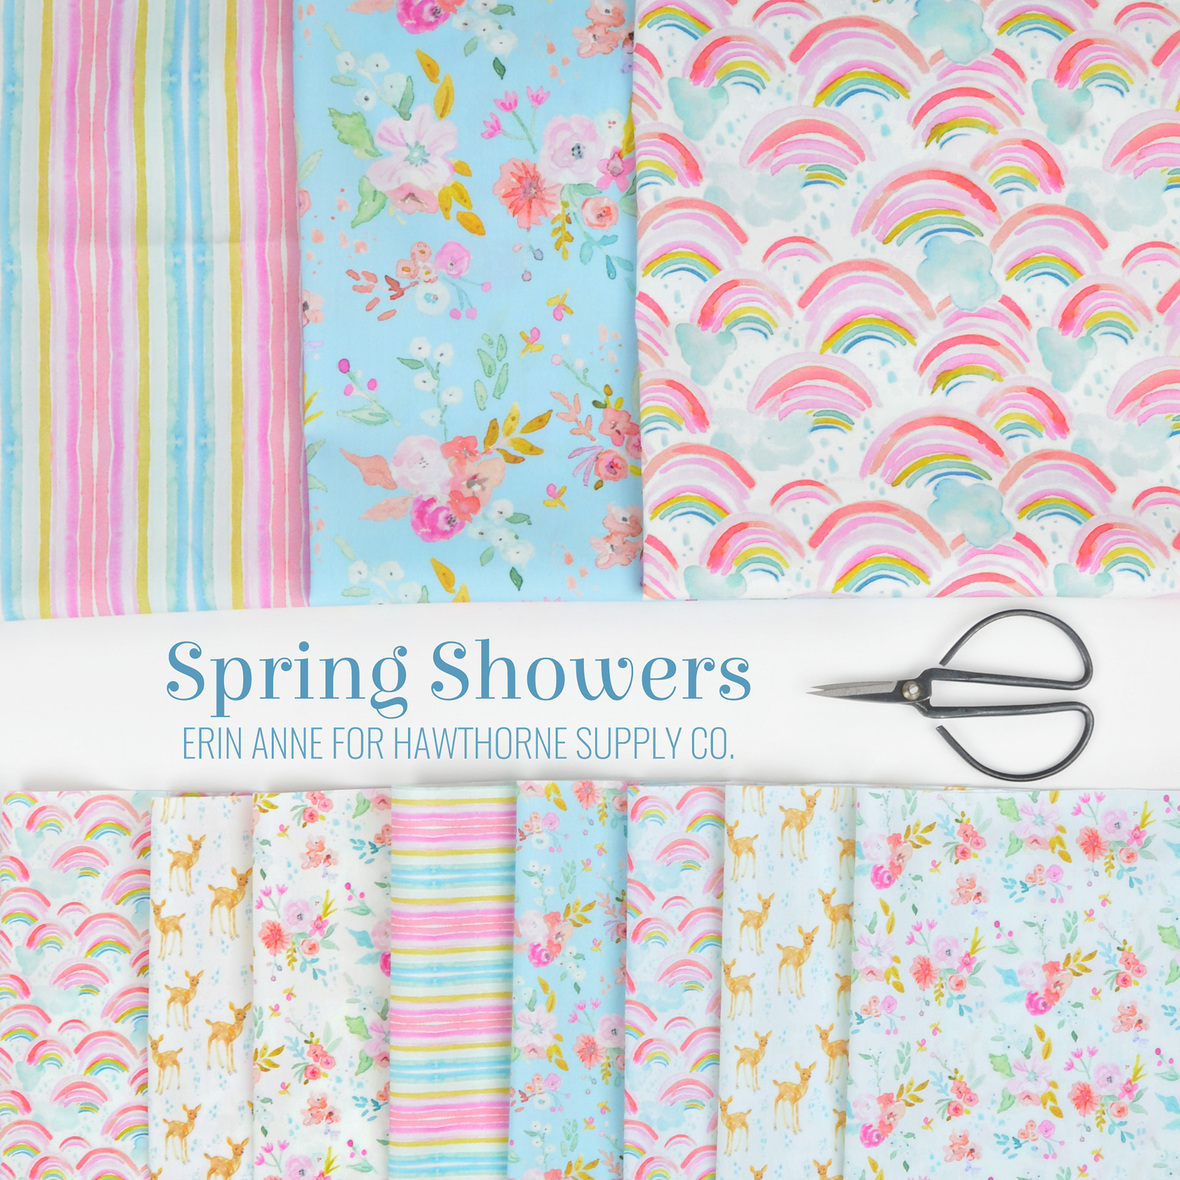 Spring-Showers-for-Hawthorne-Supply-Co